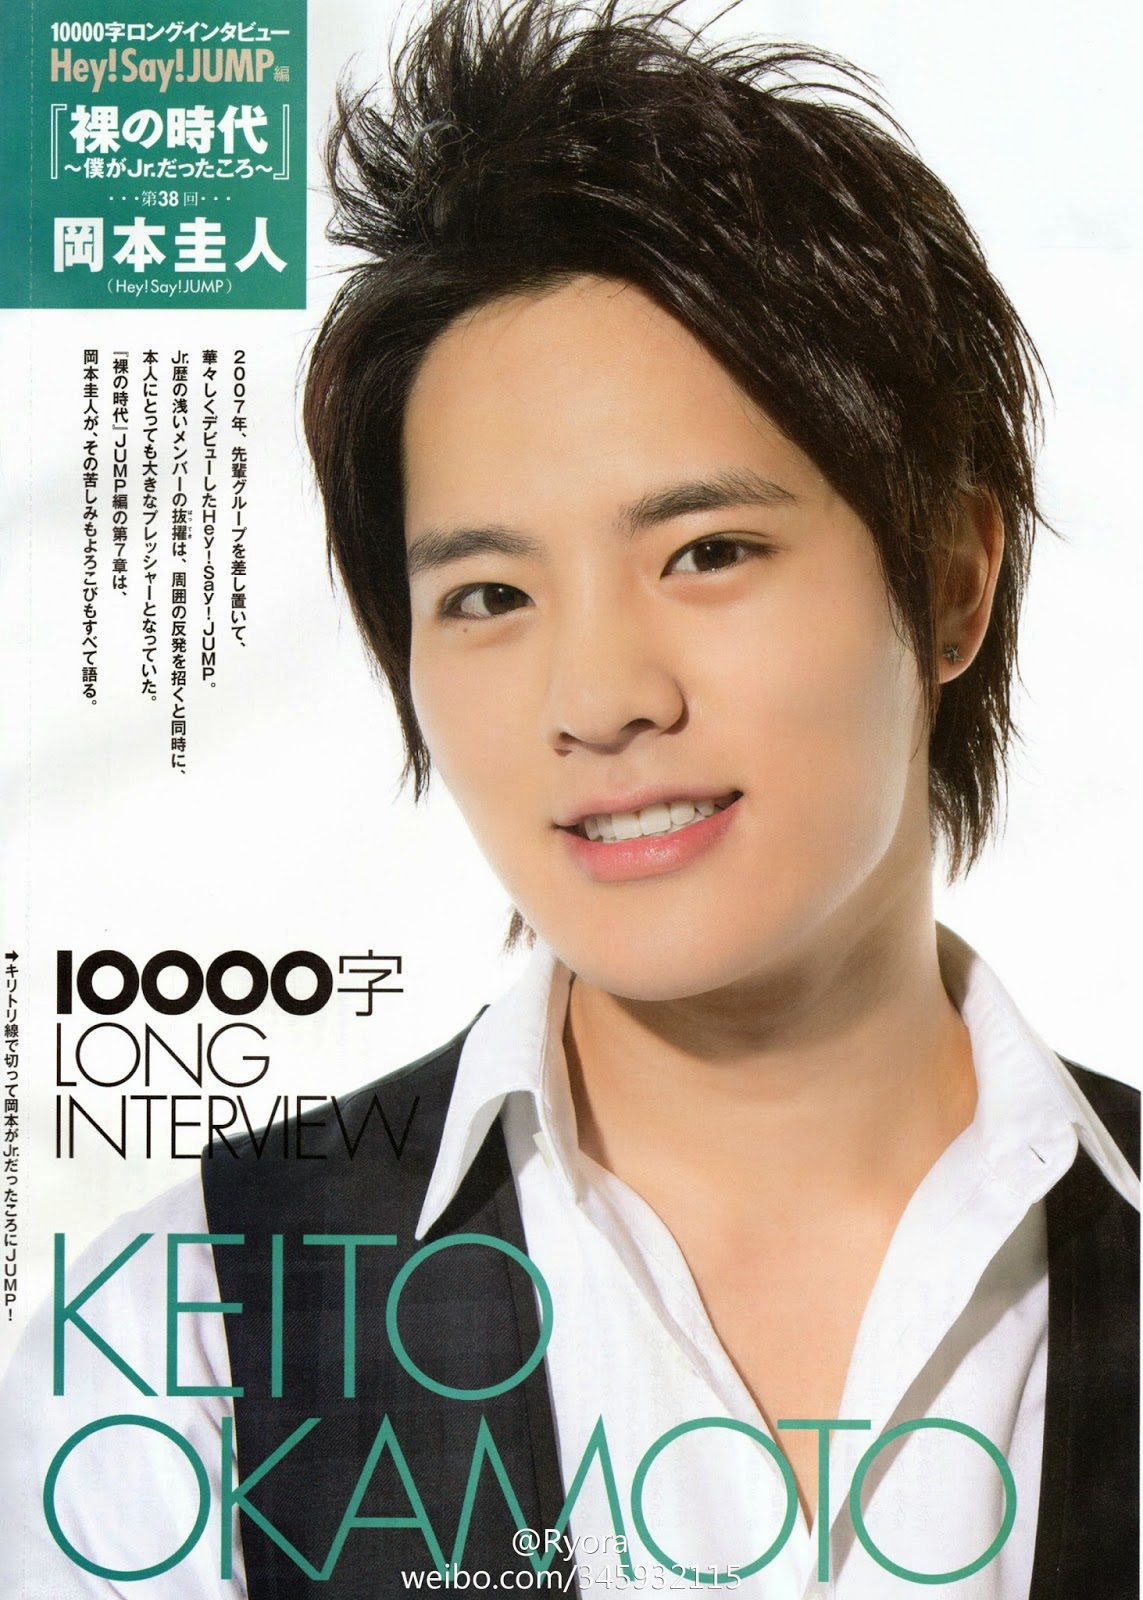 okamoto keito 10000 long interview